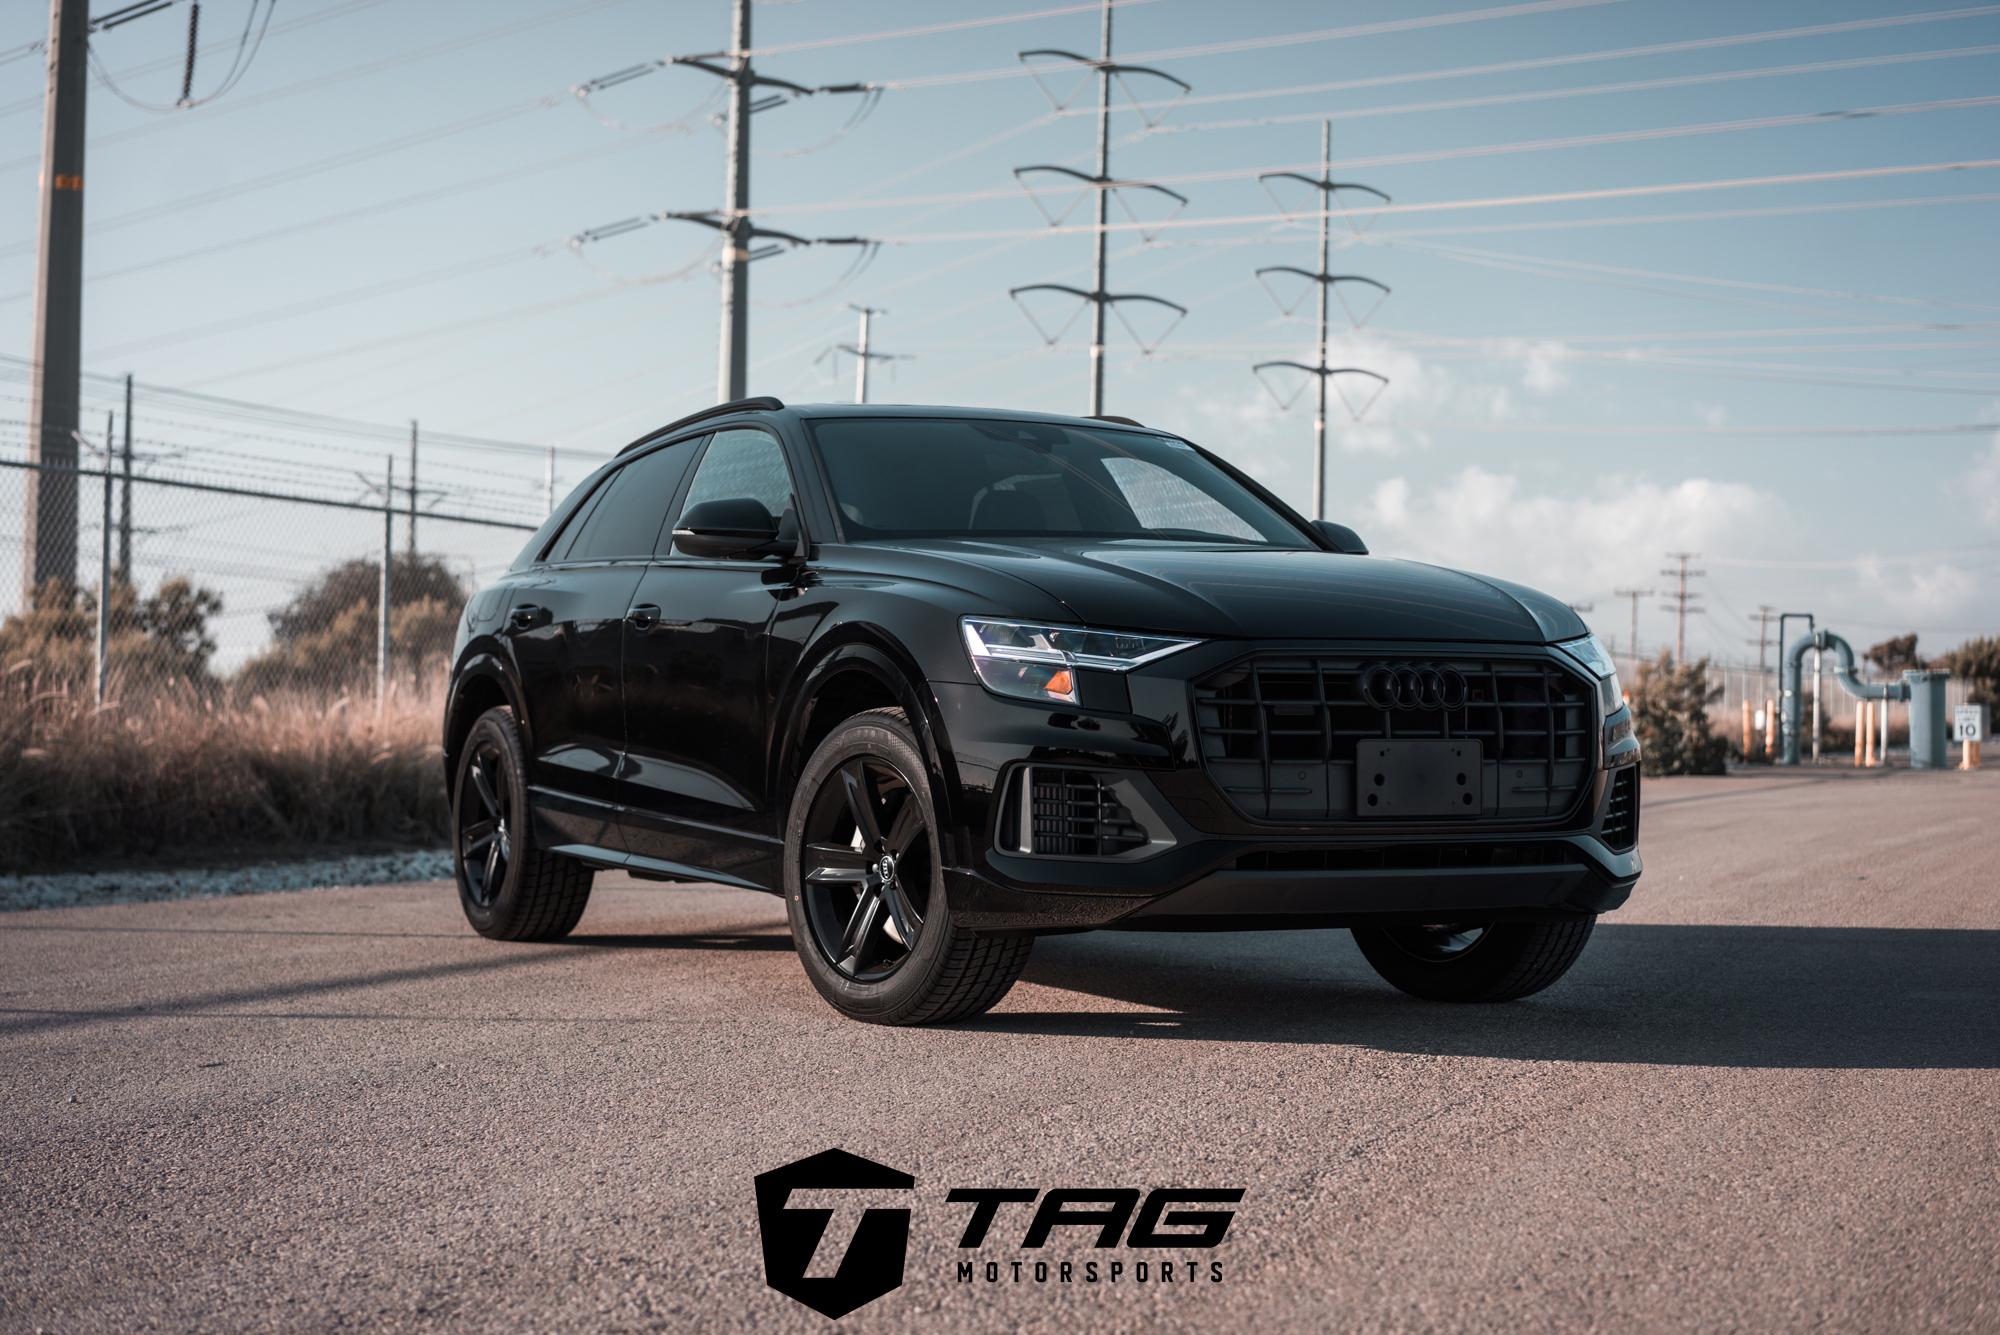 Hedendaags 2019 Audi Q8 Blacked Out With The TAG Motorsports Touch! - TAG WR-92